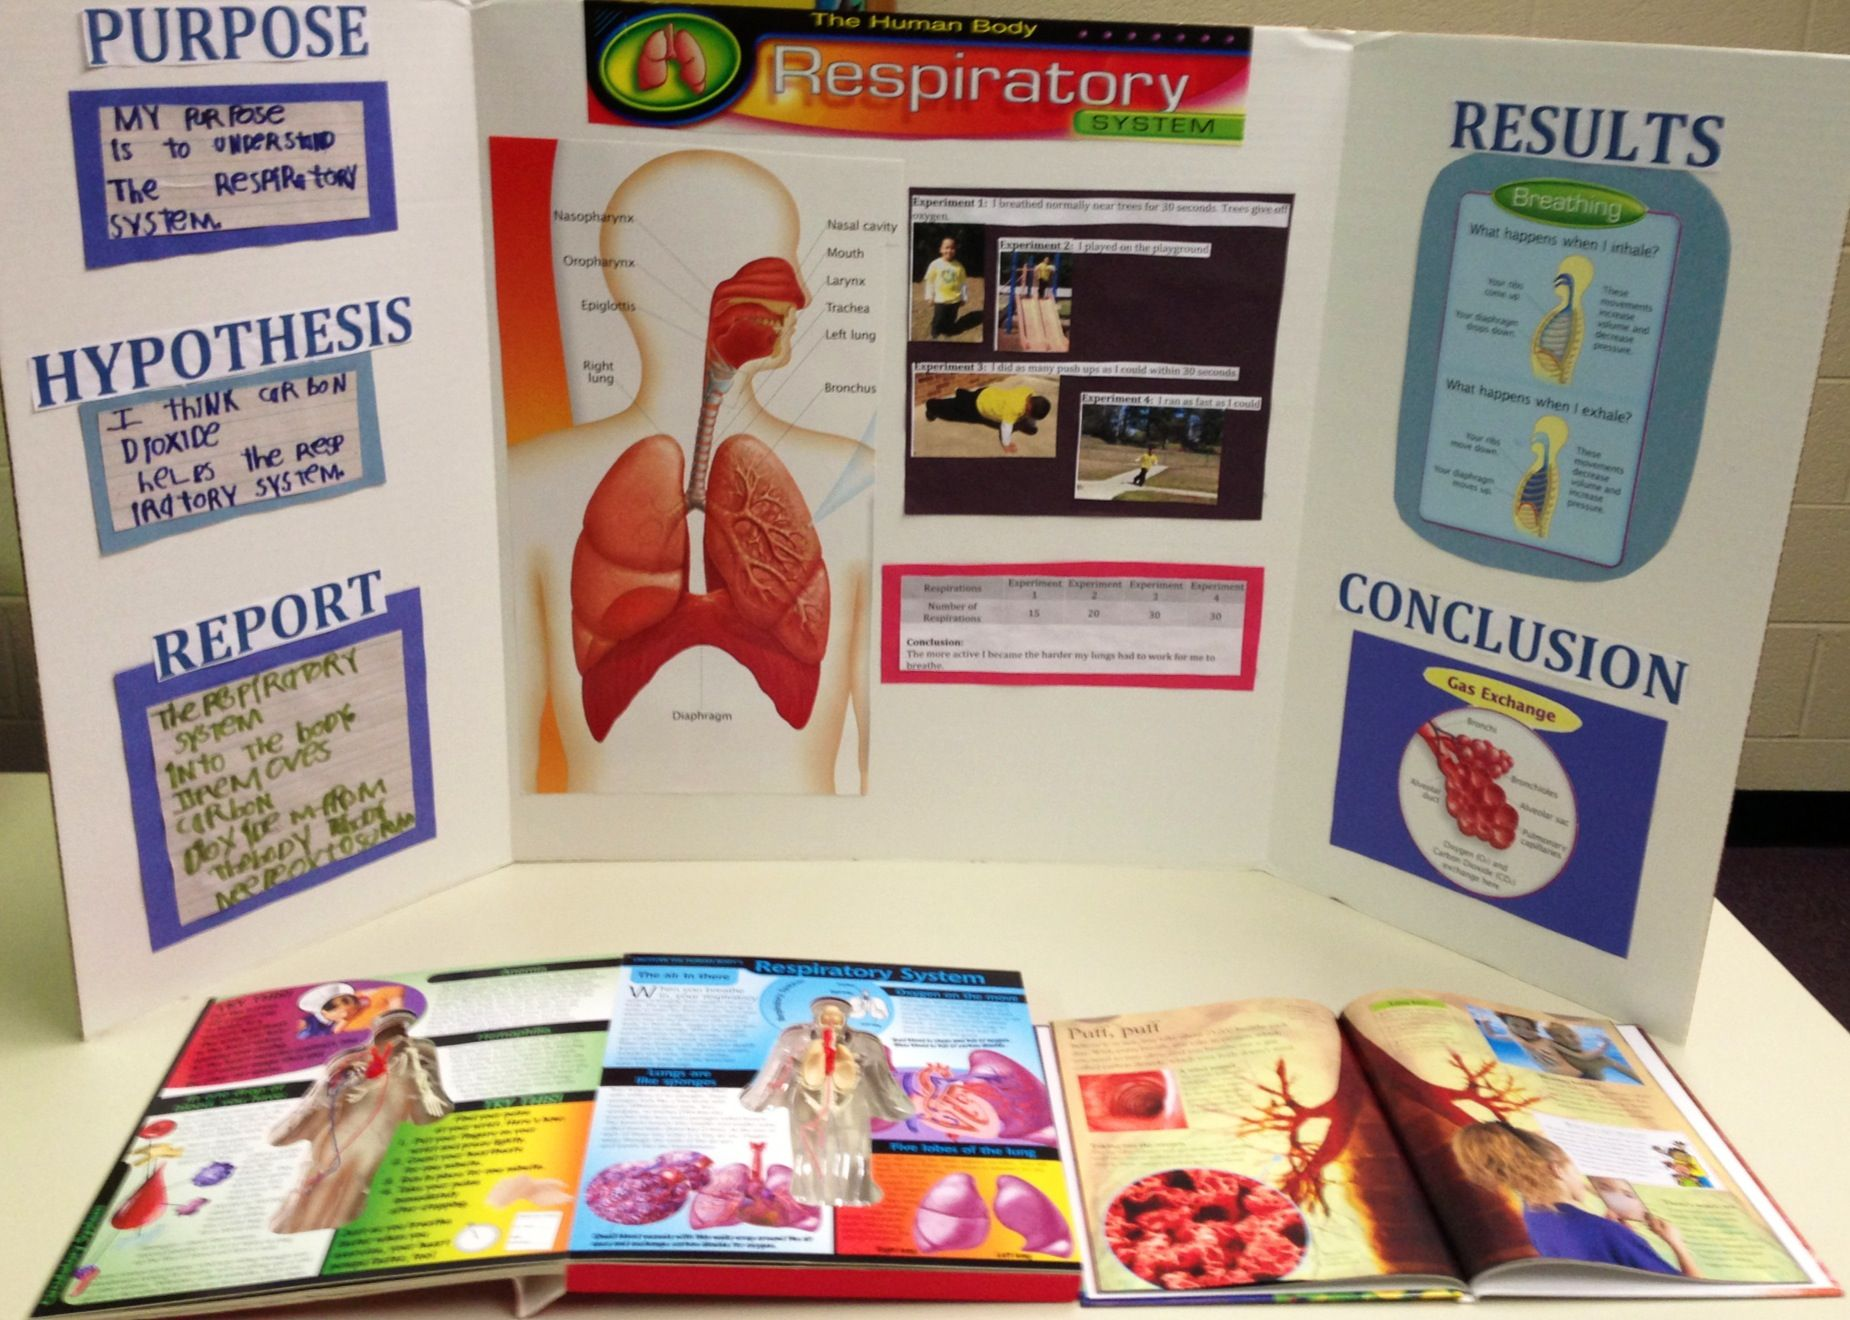 Zion's Respiratory System Project